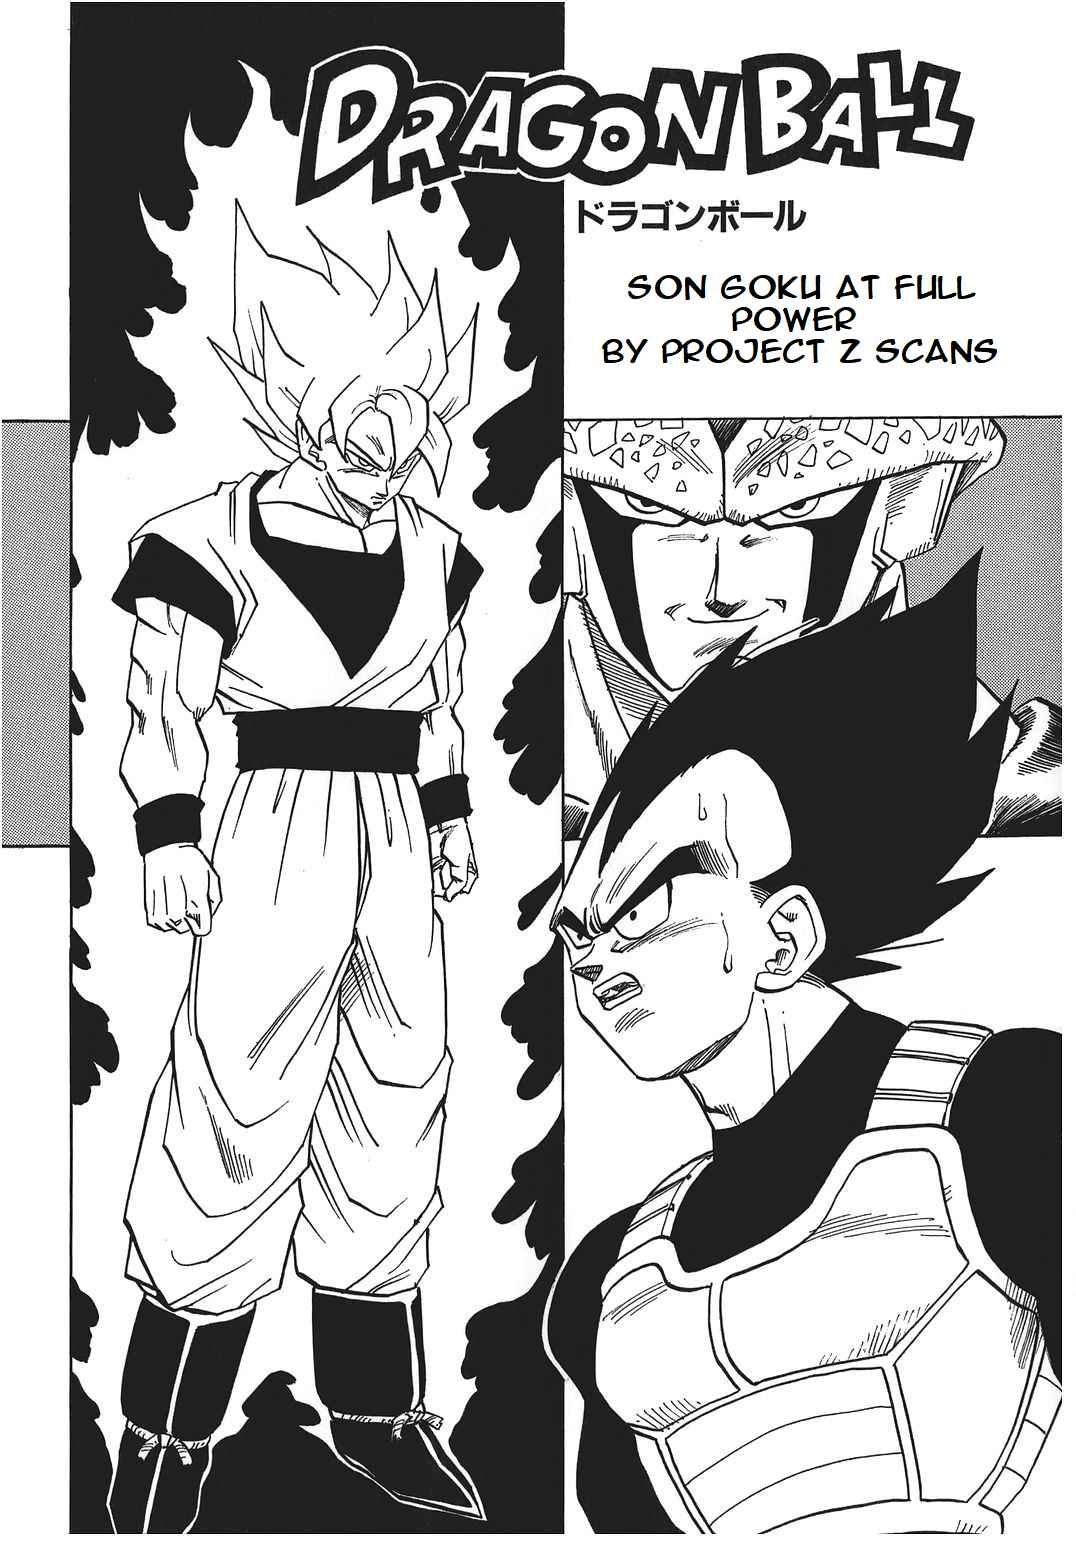 Dragon Ball Vol. 34 Ch. 398 Son Goku at Full Power